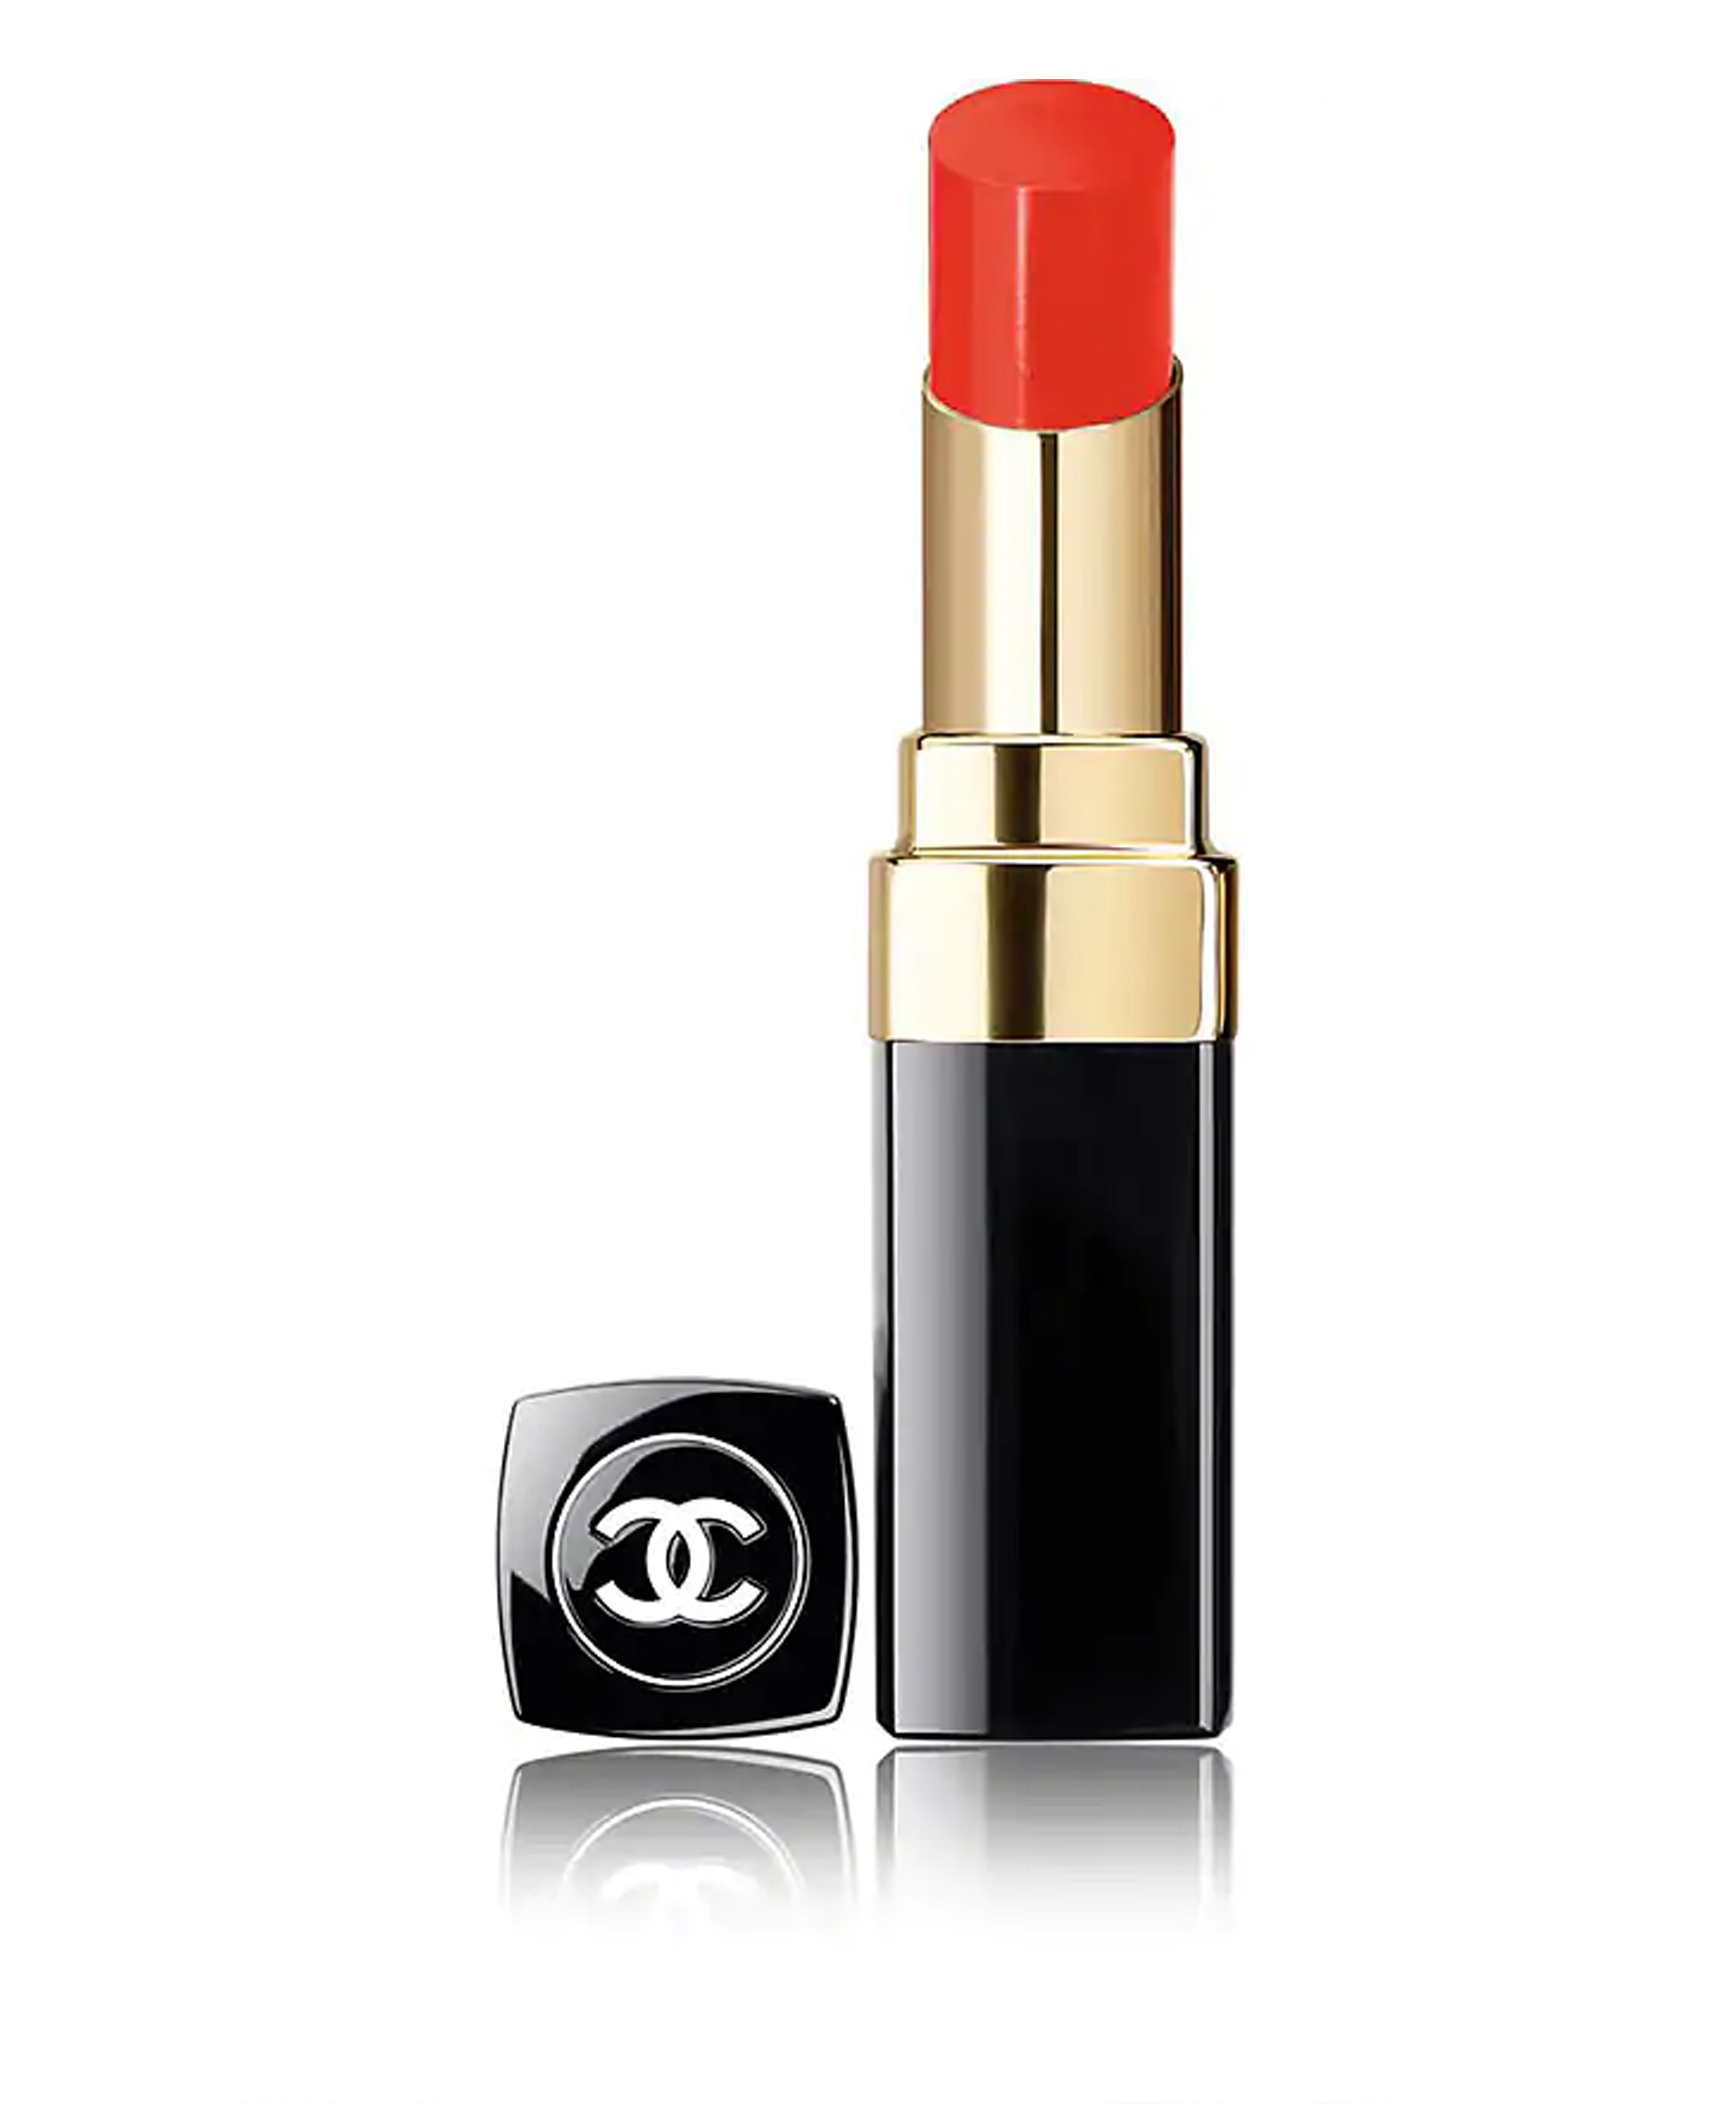 Chanel lipstain